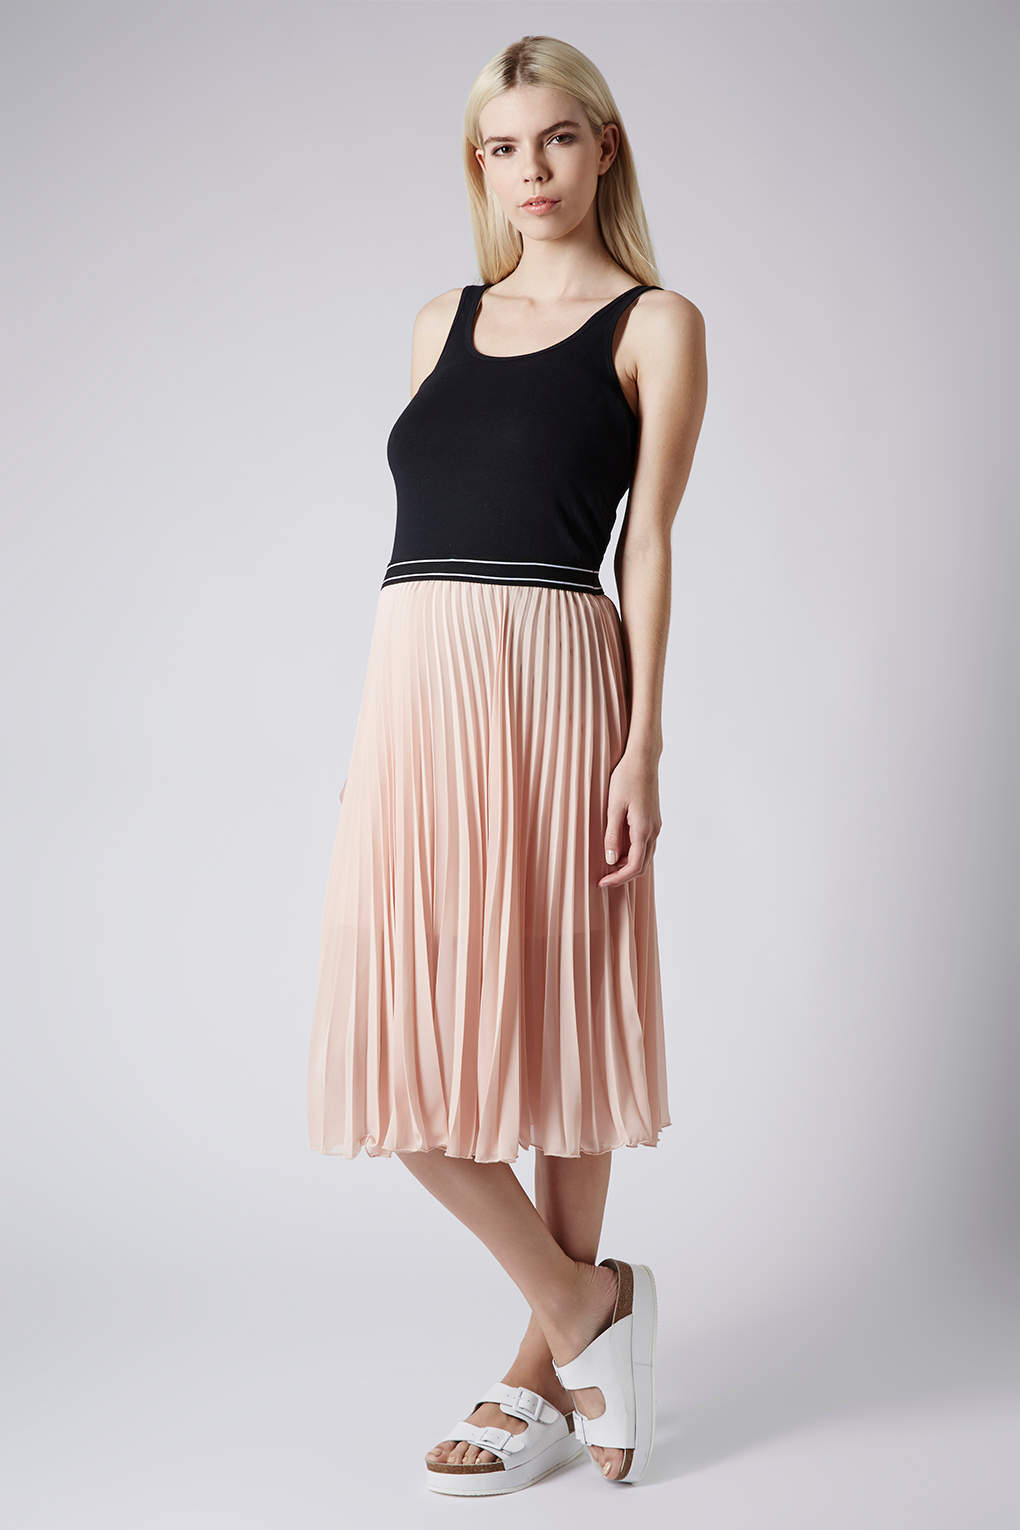 Topshop Maternity Sport Waistband Pleat Midi Skirt in Natural | Lyst